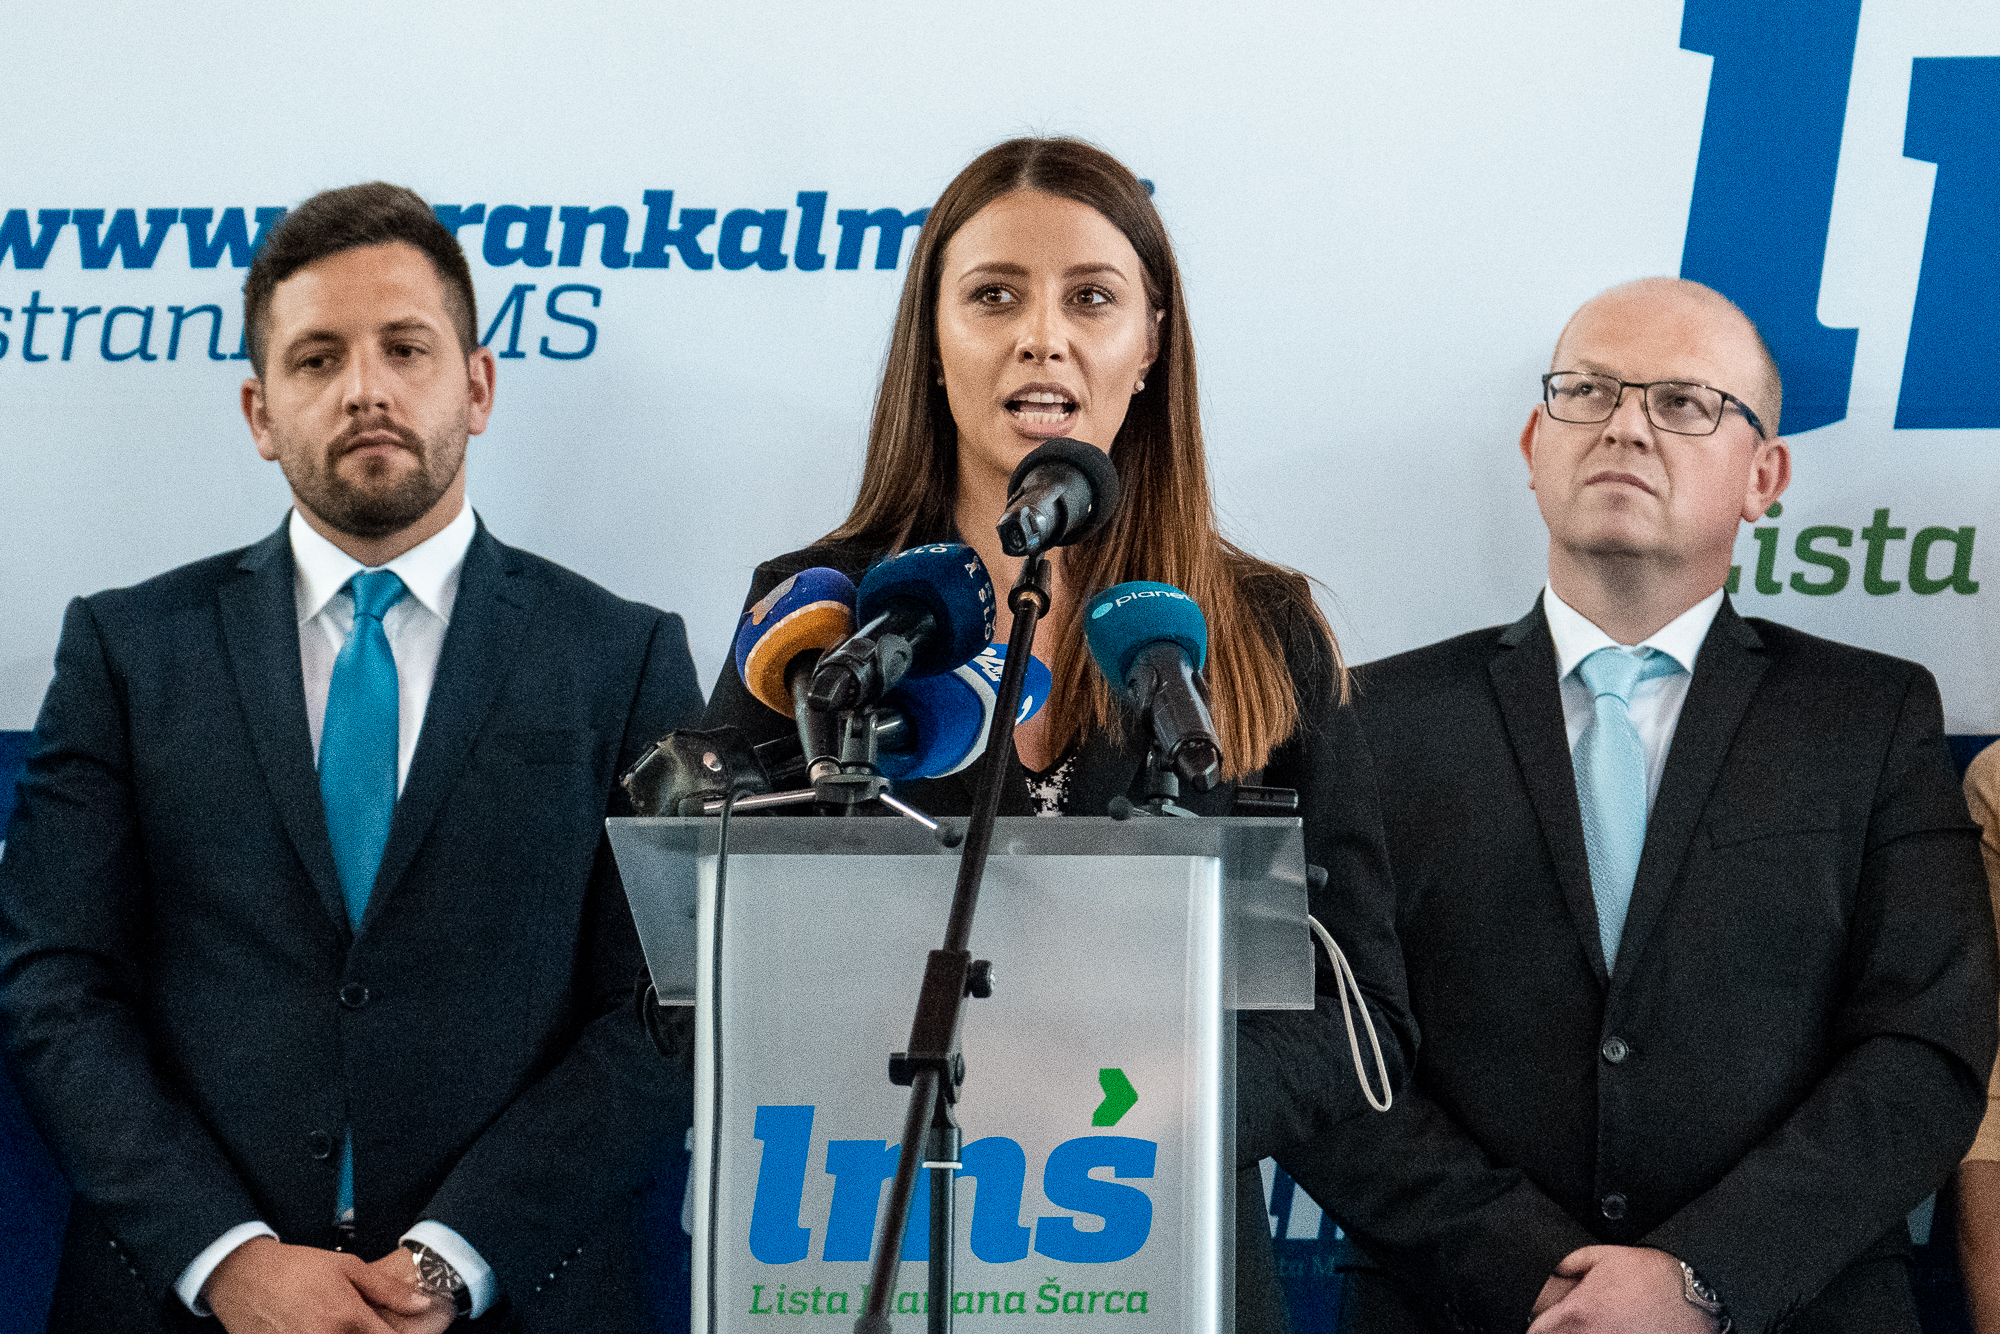 Irena Joveva, candidate of the Marjan Šarec List (LMŠ) in the EU election, on the stage on the Fifth Congress of Lista Marjana Šarca in Trbovlje